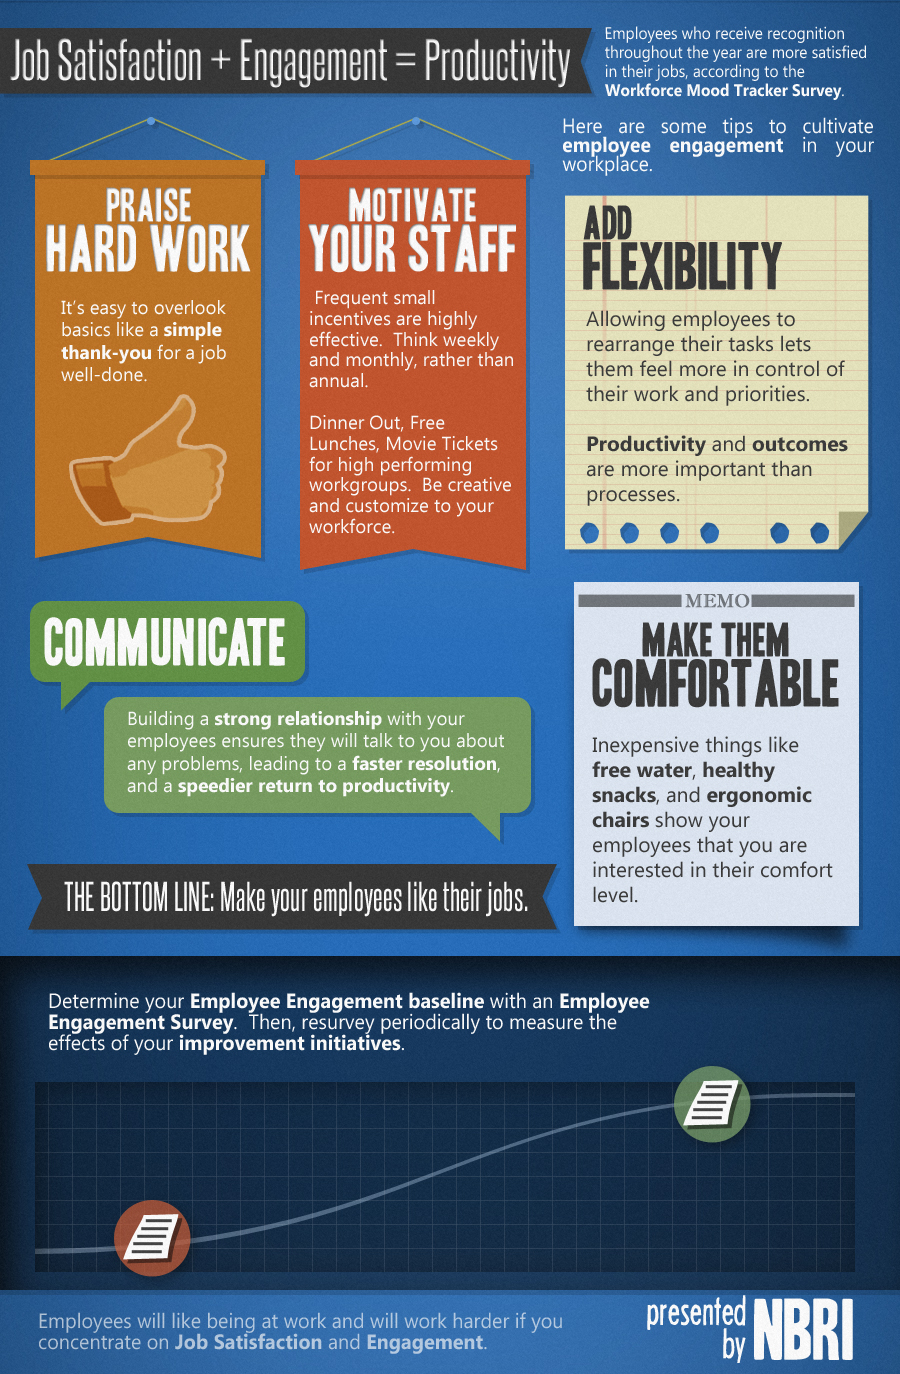 nbri-infographic-employeengagement